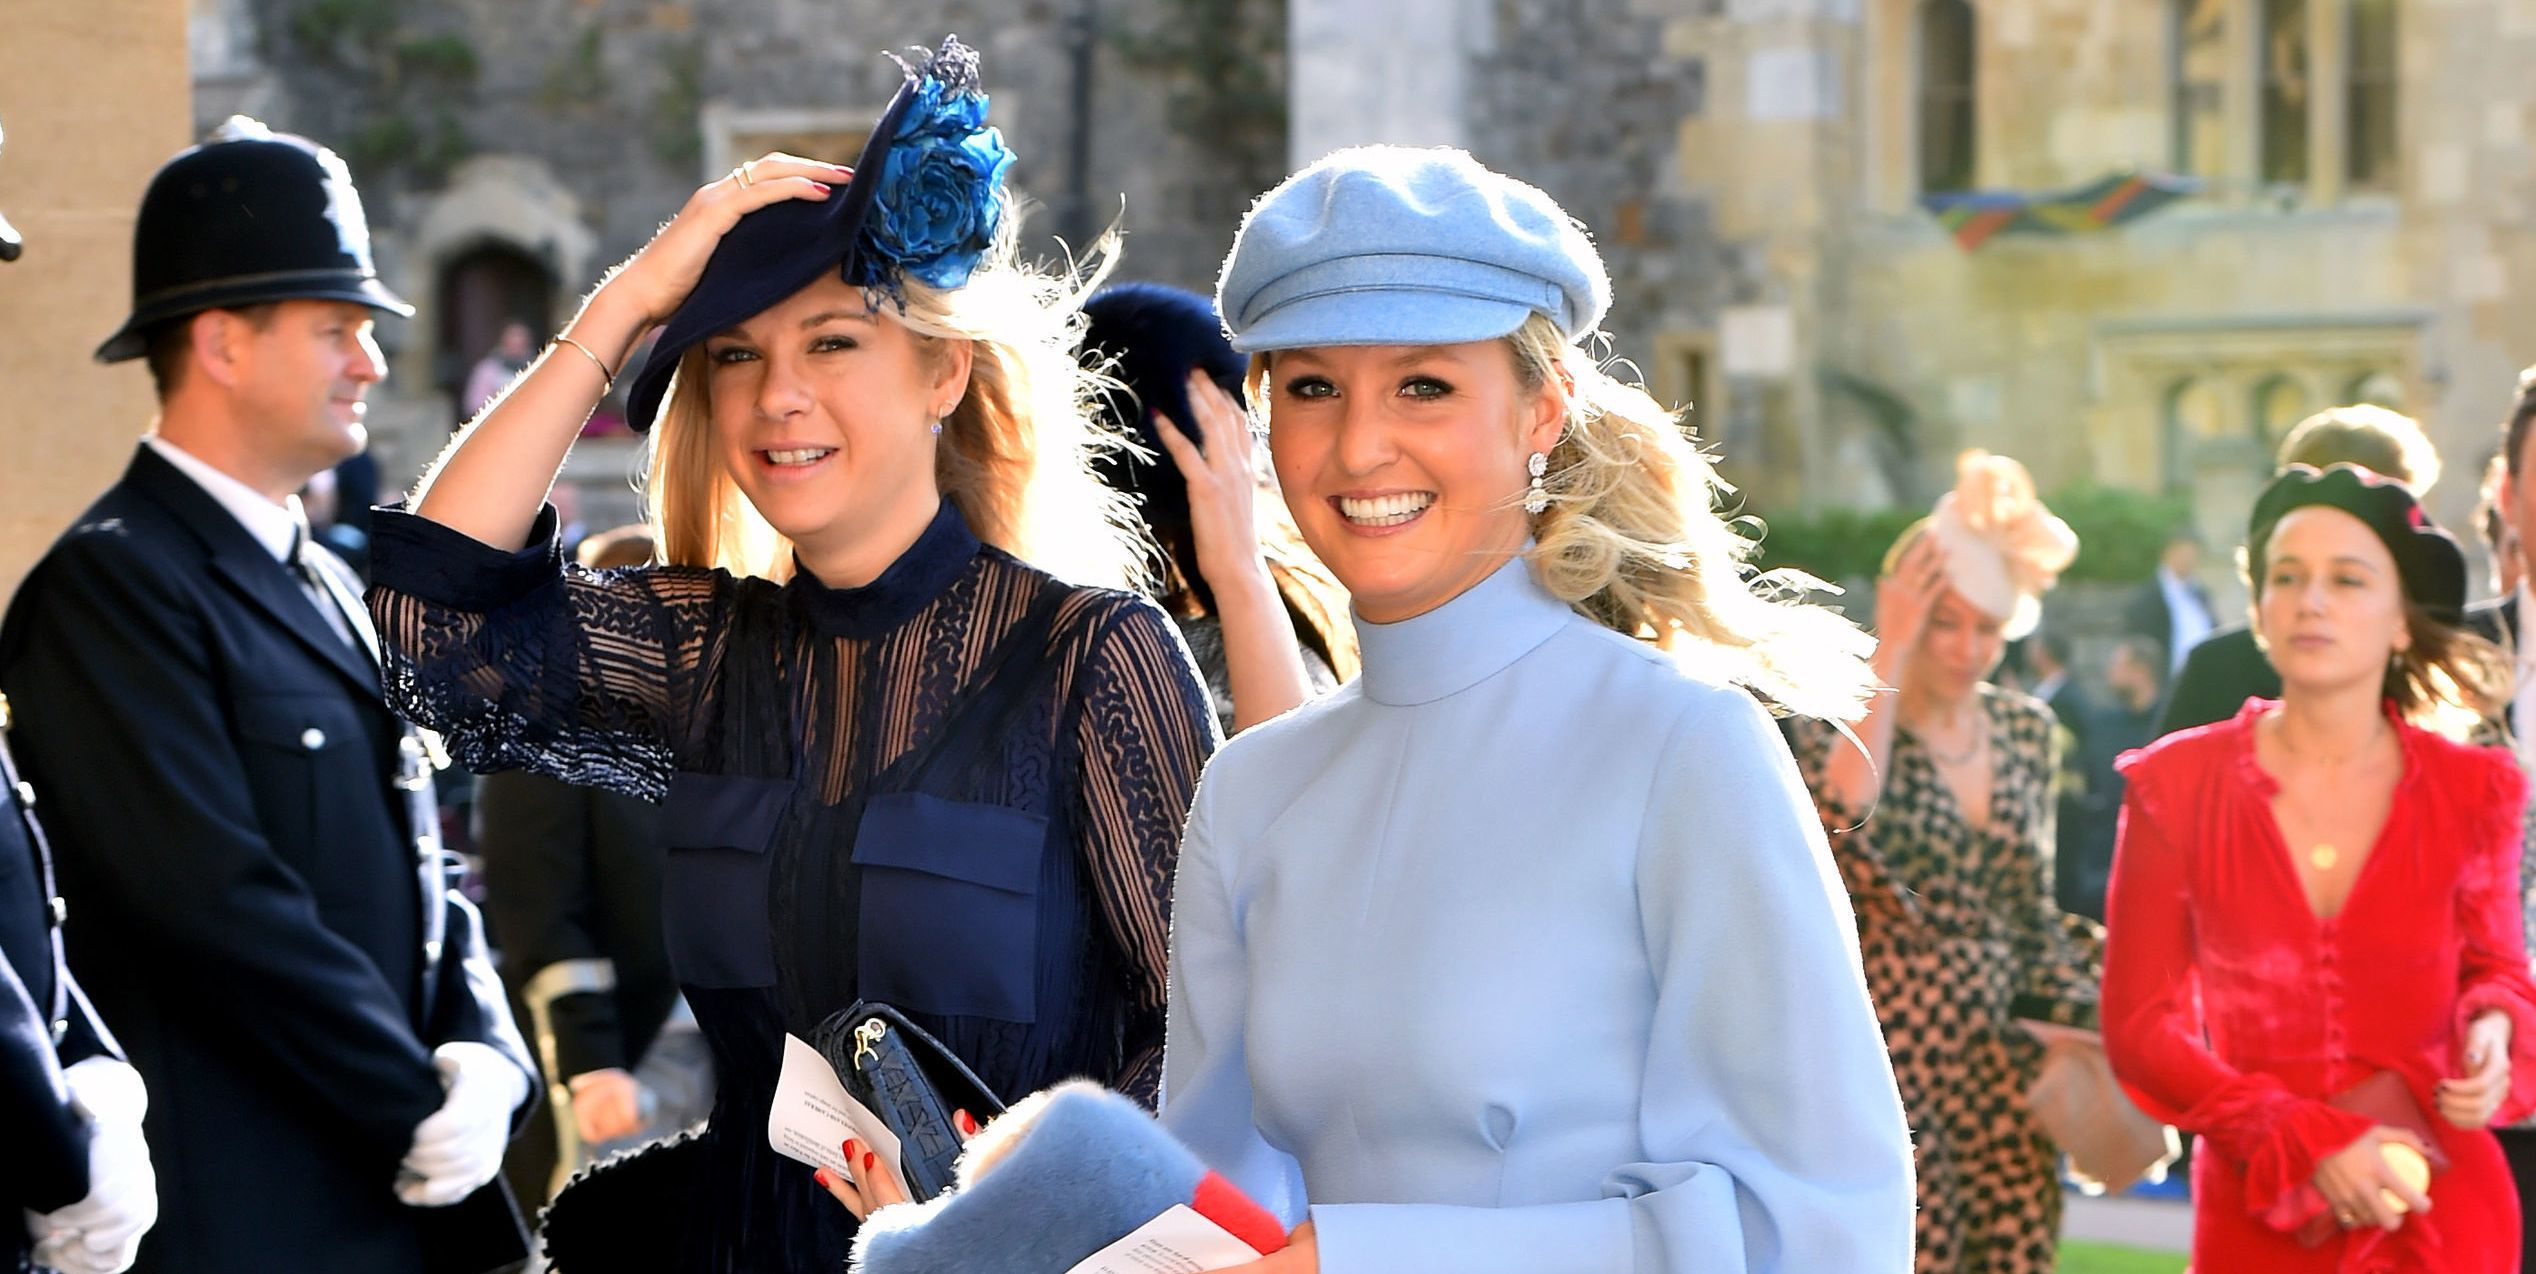 Prince Harry's Ex Chelsy Davy Arrives in a Navy Sheer Dress at Princess Eugenie's Wedding